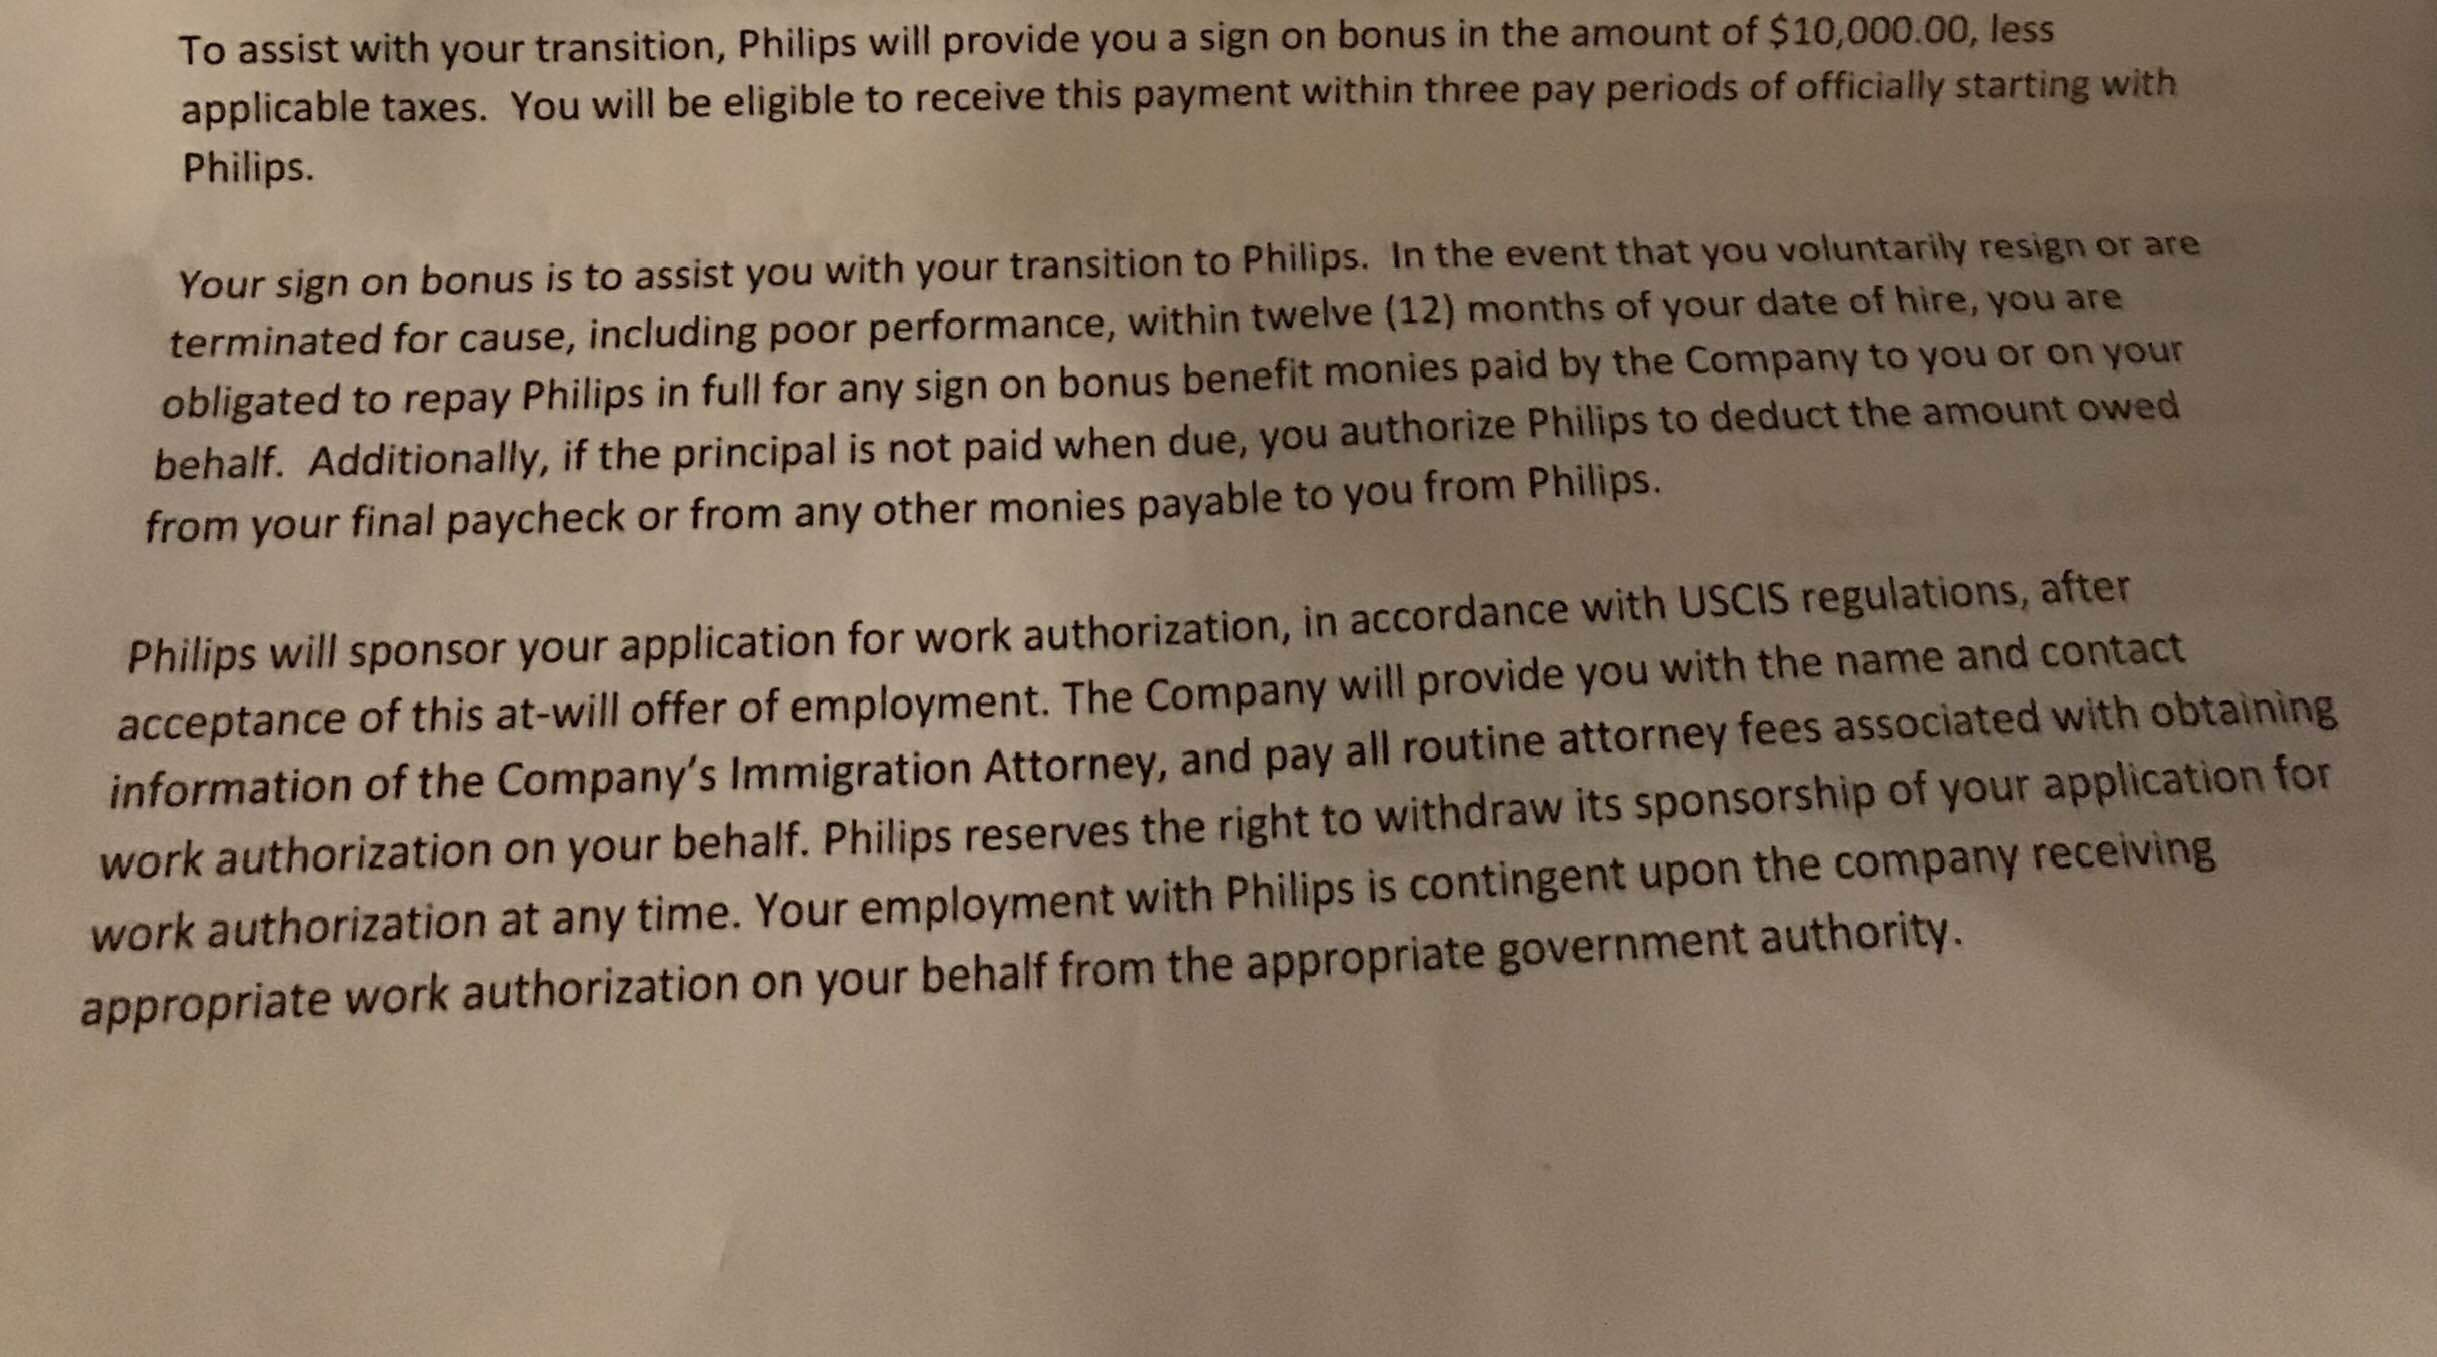 Compensation: A shitty company is asking me to payback